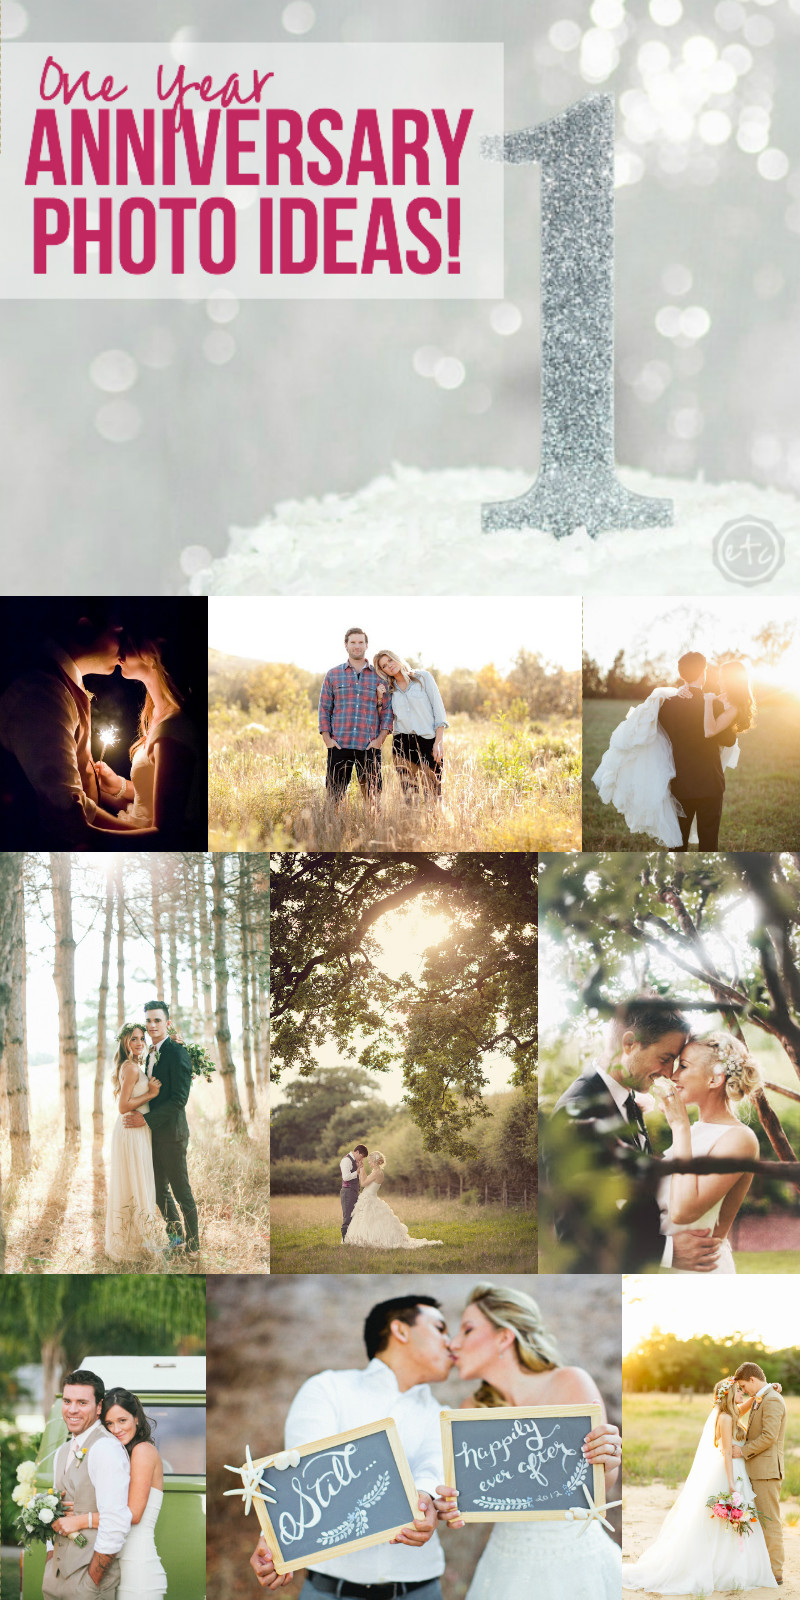 One year anniversary photo ideas happily ever after etc 1 year anniversary photo ideas with happily ever after etc negle Gallery